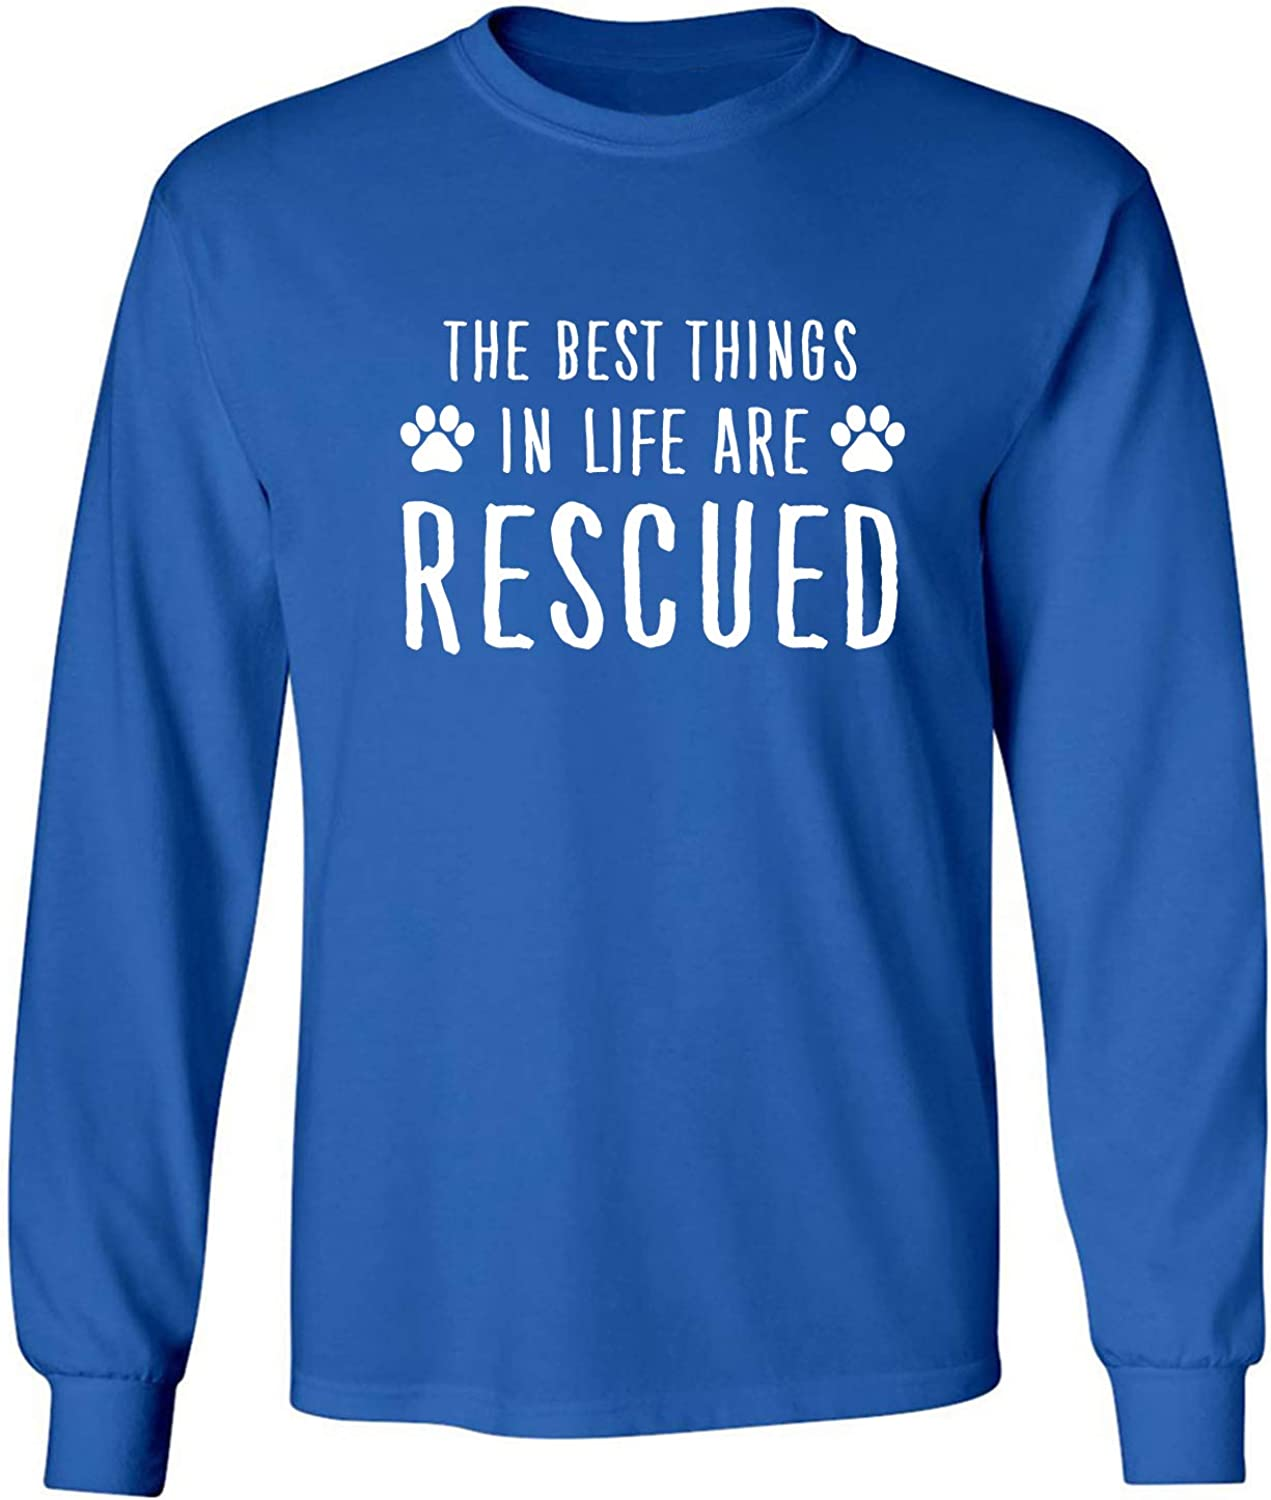 Best Things in Life are Rescued Adult Long Sleeve T-Shirt in Royal - XXXXX-Large